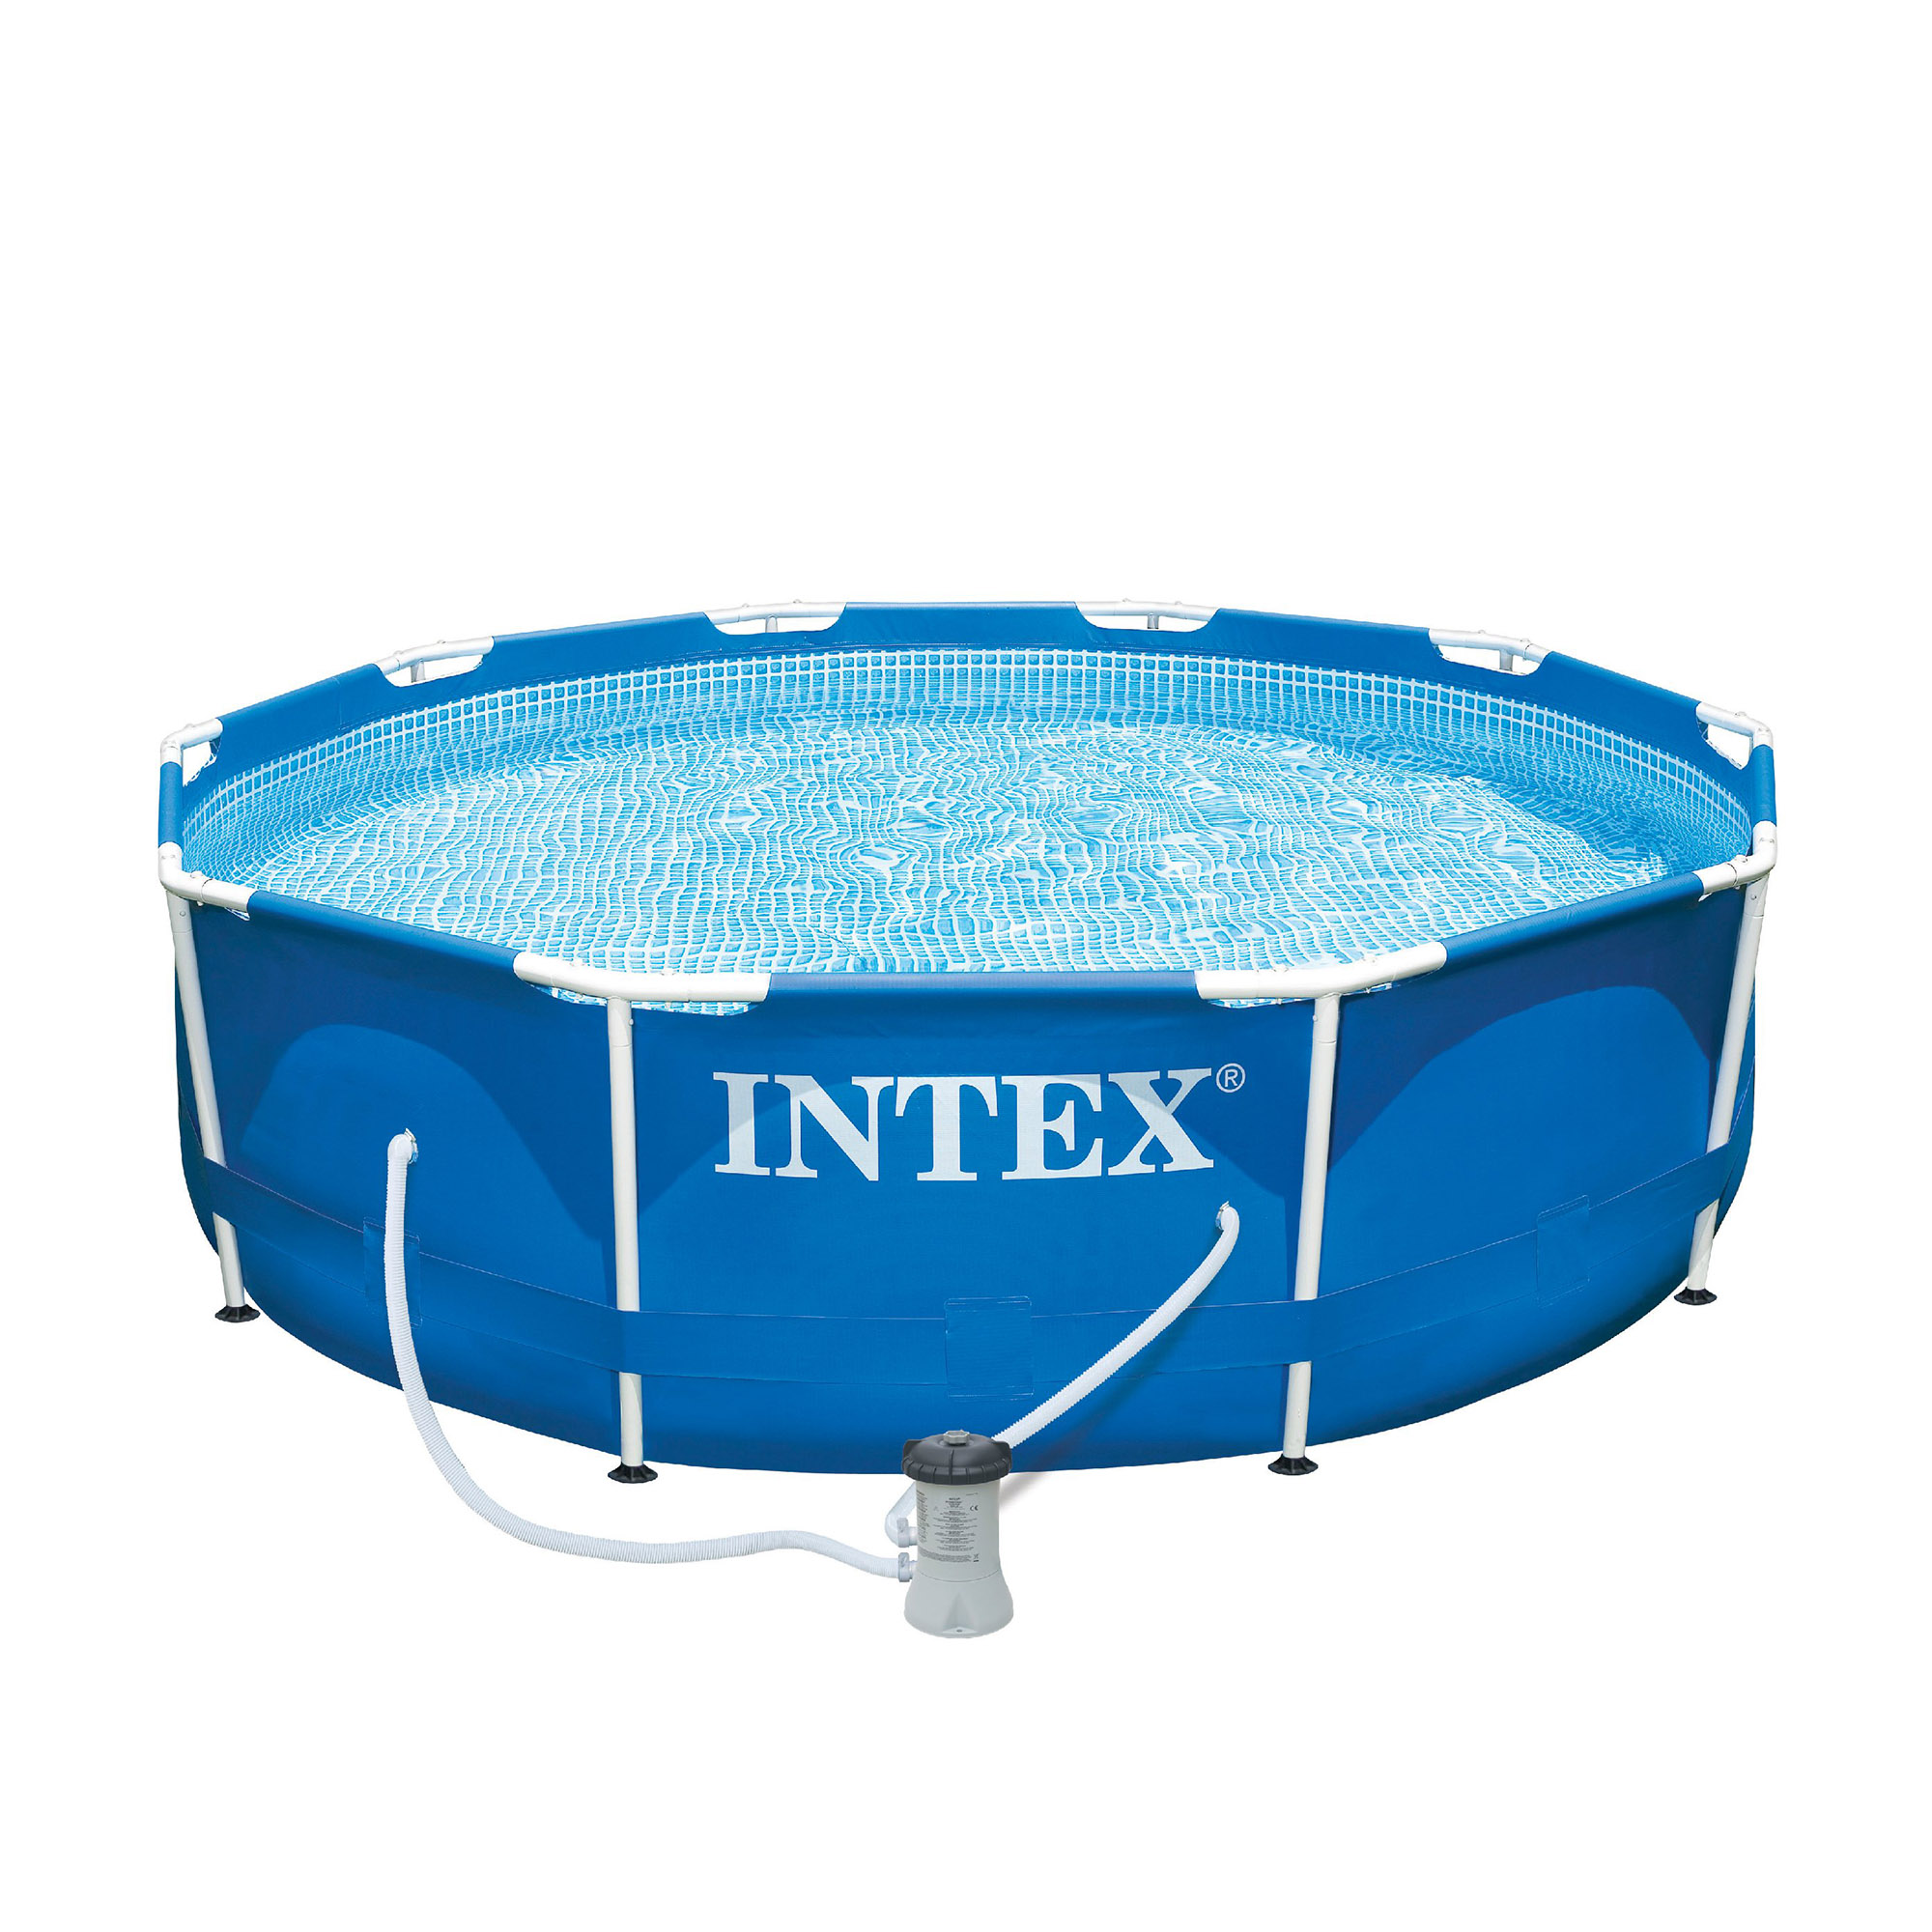 Intex 10 x 2 5 foot metal frame swimming pool set w for Swimming pool set angebot